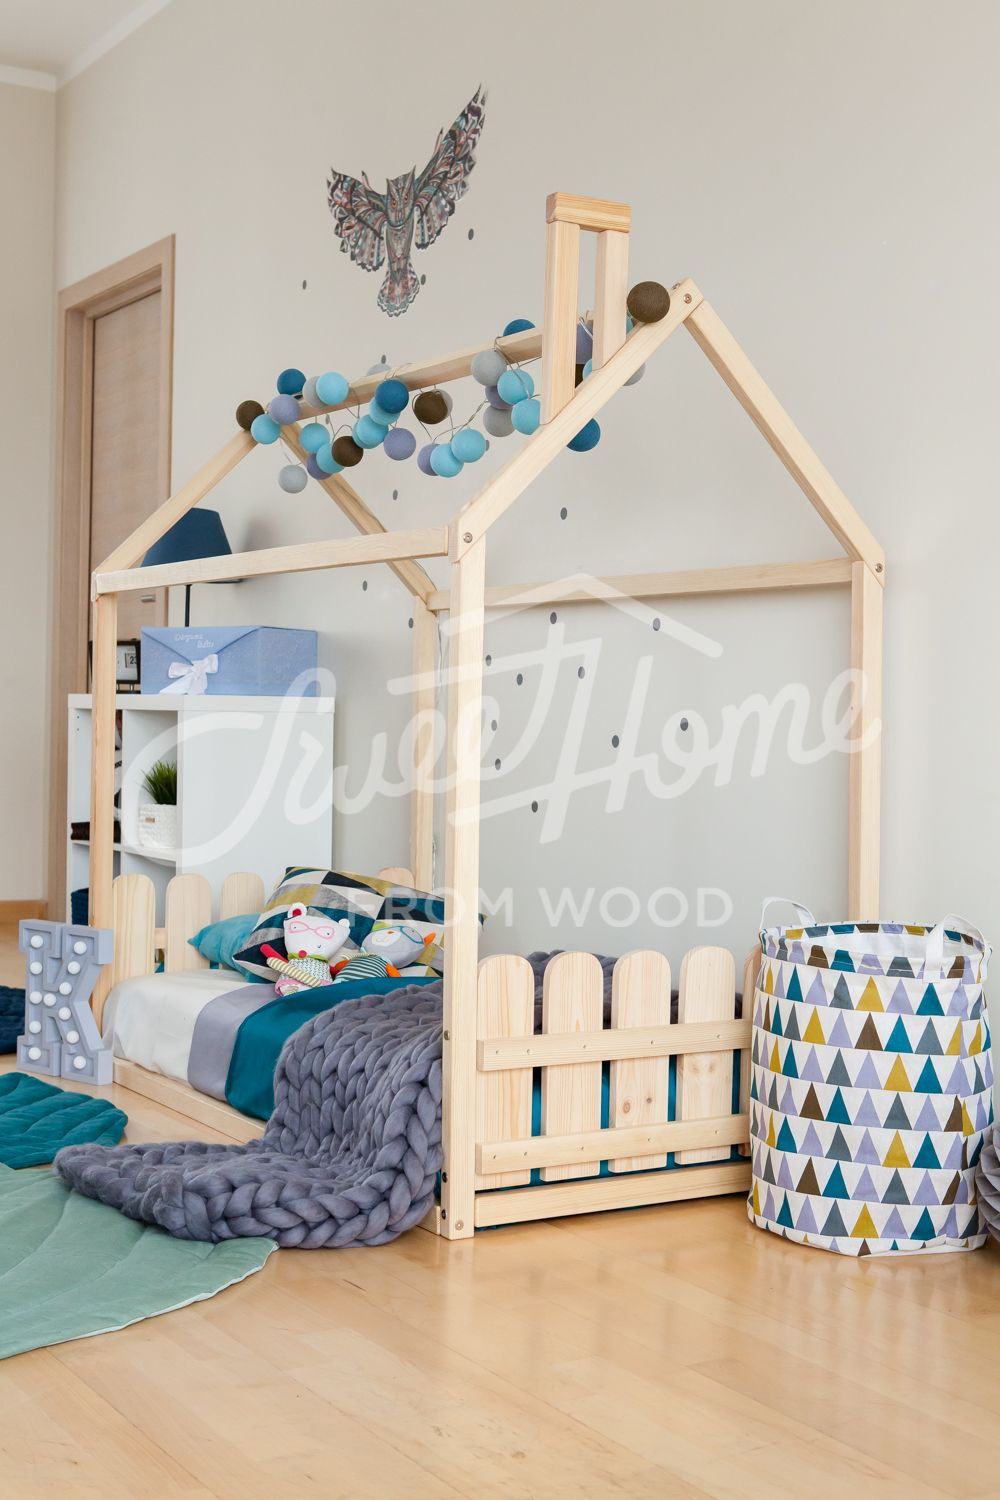 House Bed Twin Montessori Floor Bed Toddler House Bed House Bed